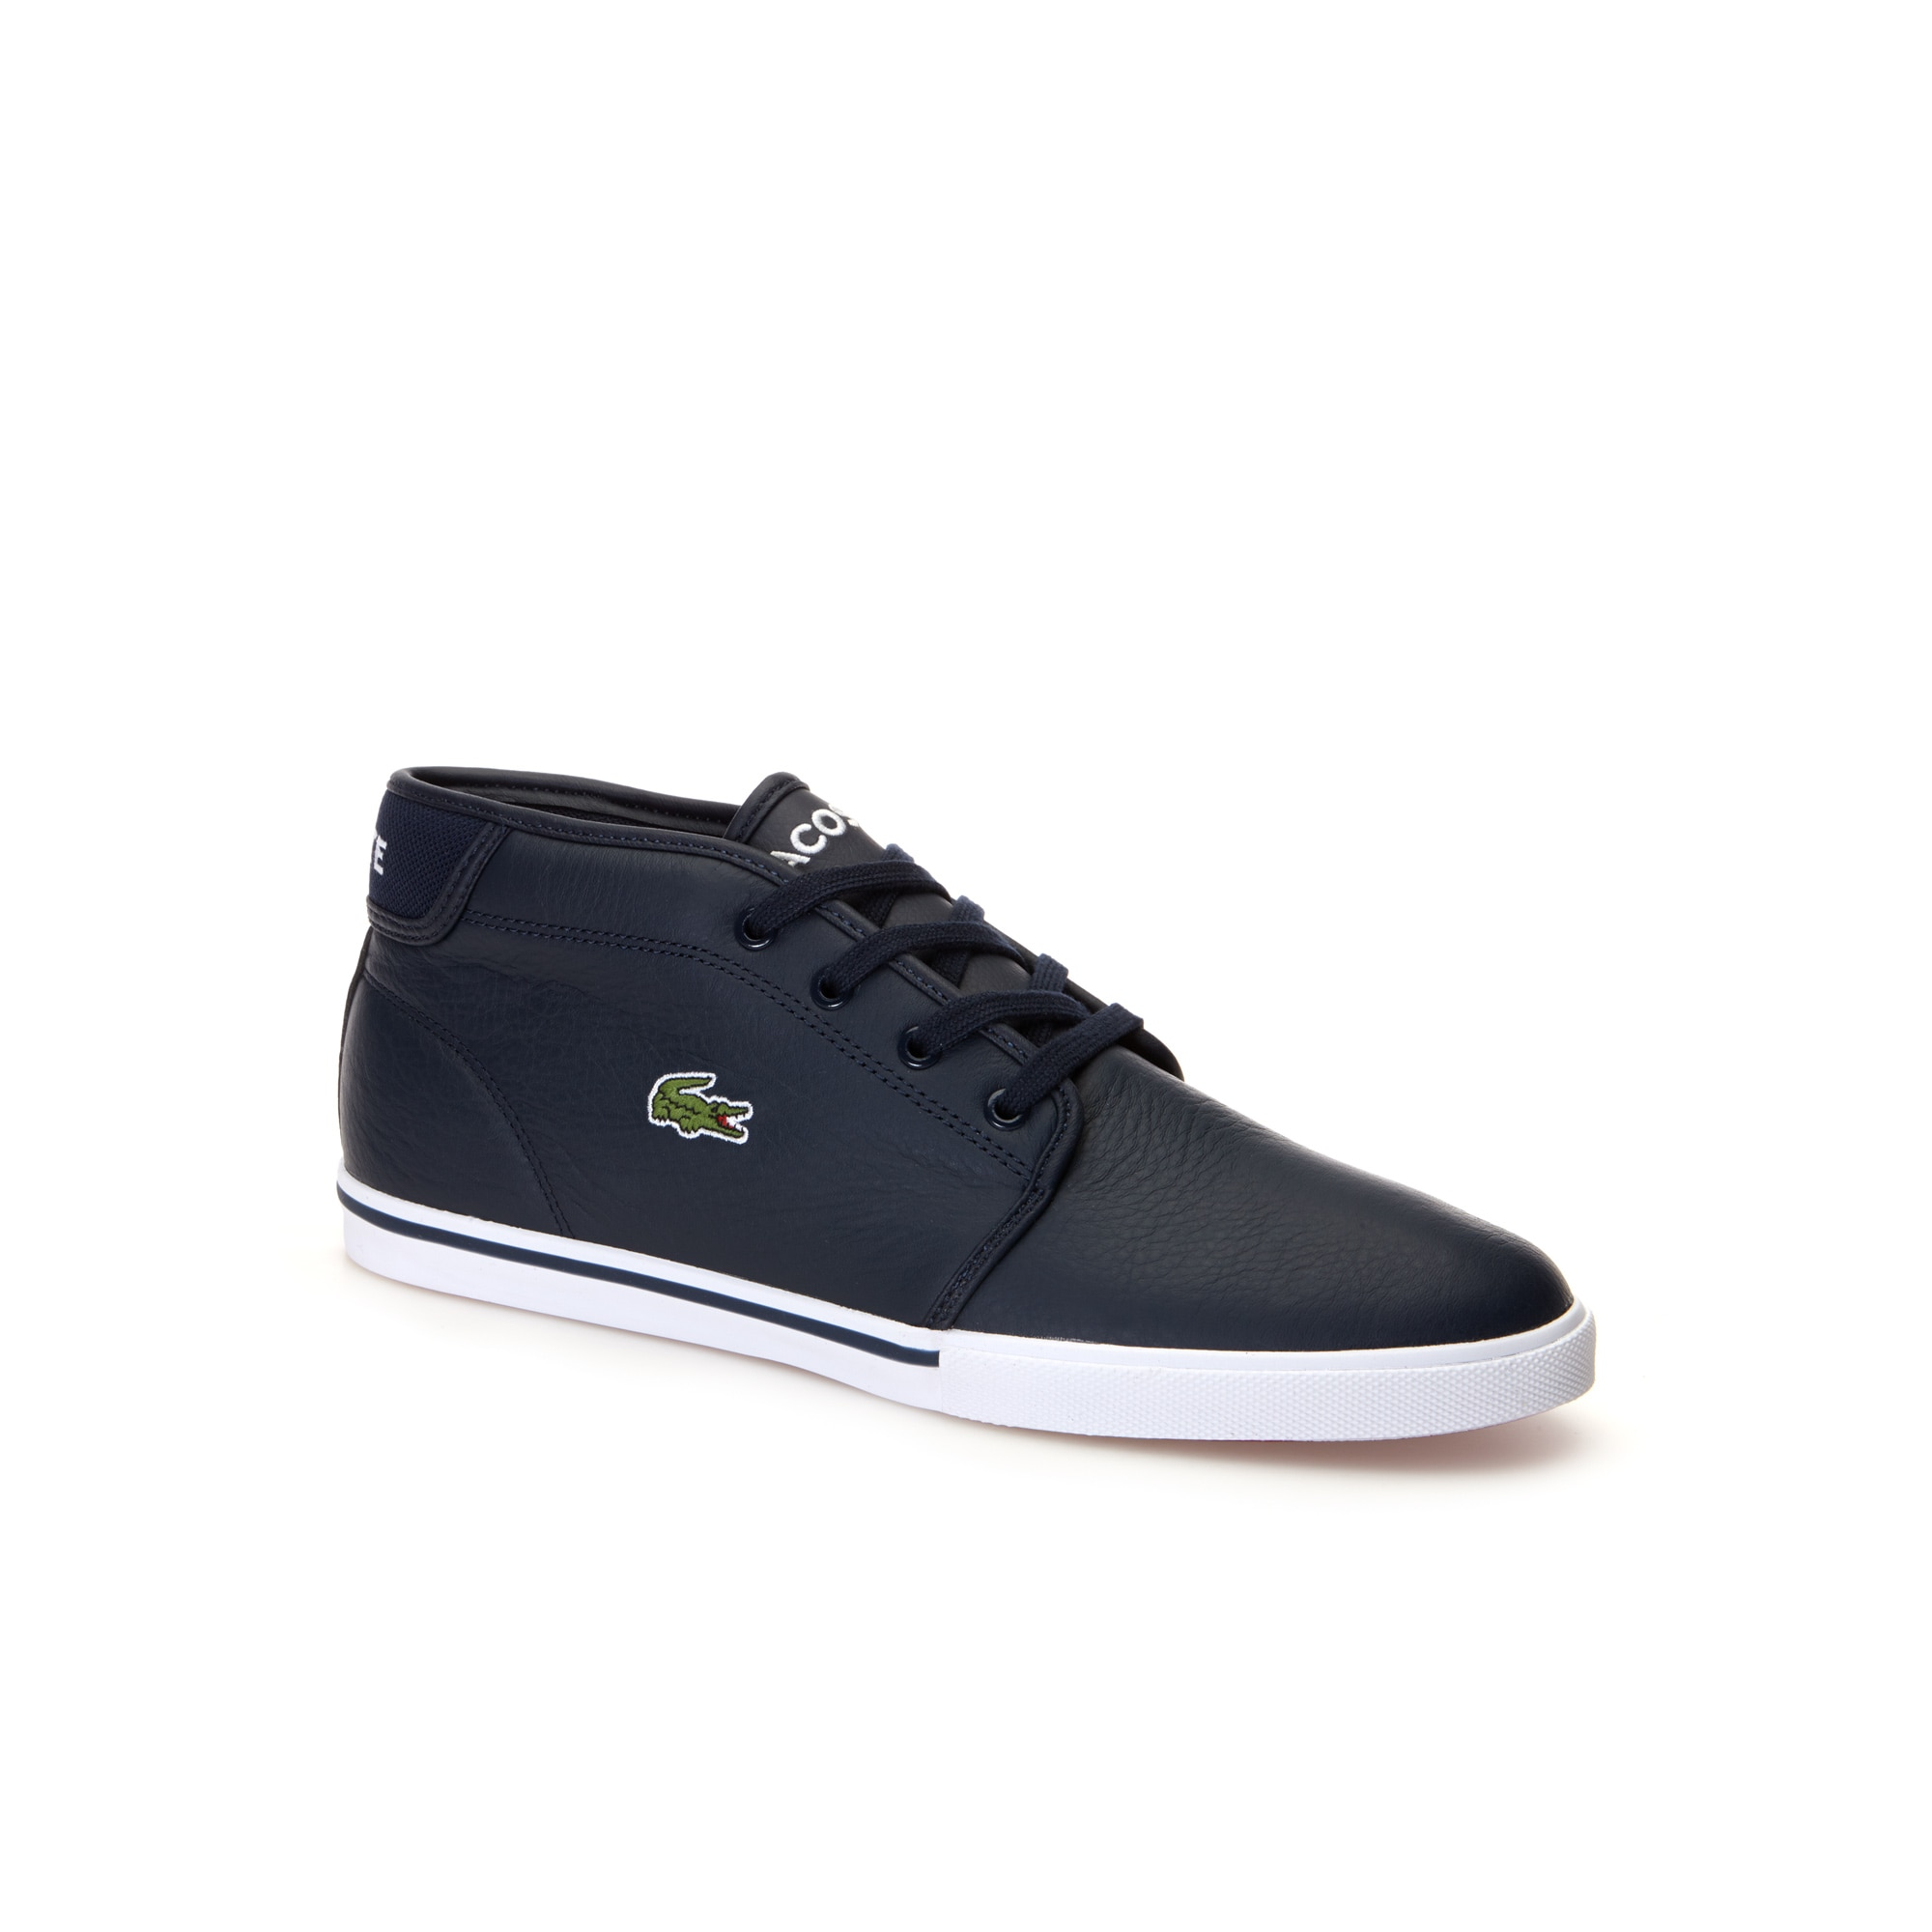 46fb04e83 Men ampthill sneakers men ampthill sneakers jpg 460x460 Lacoste shoe